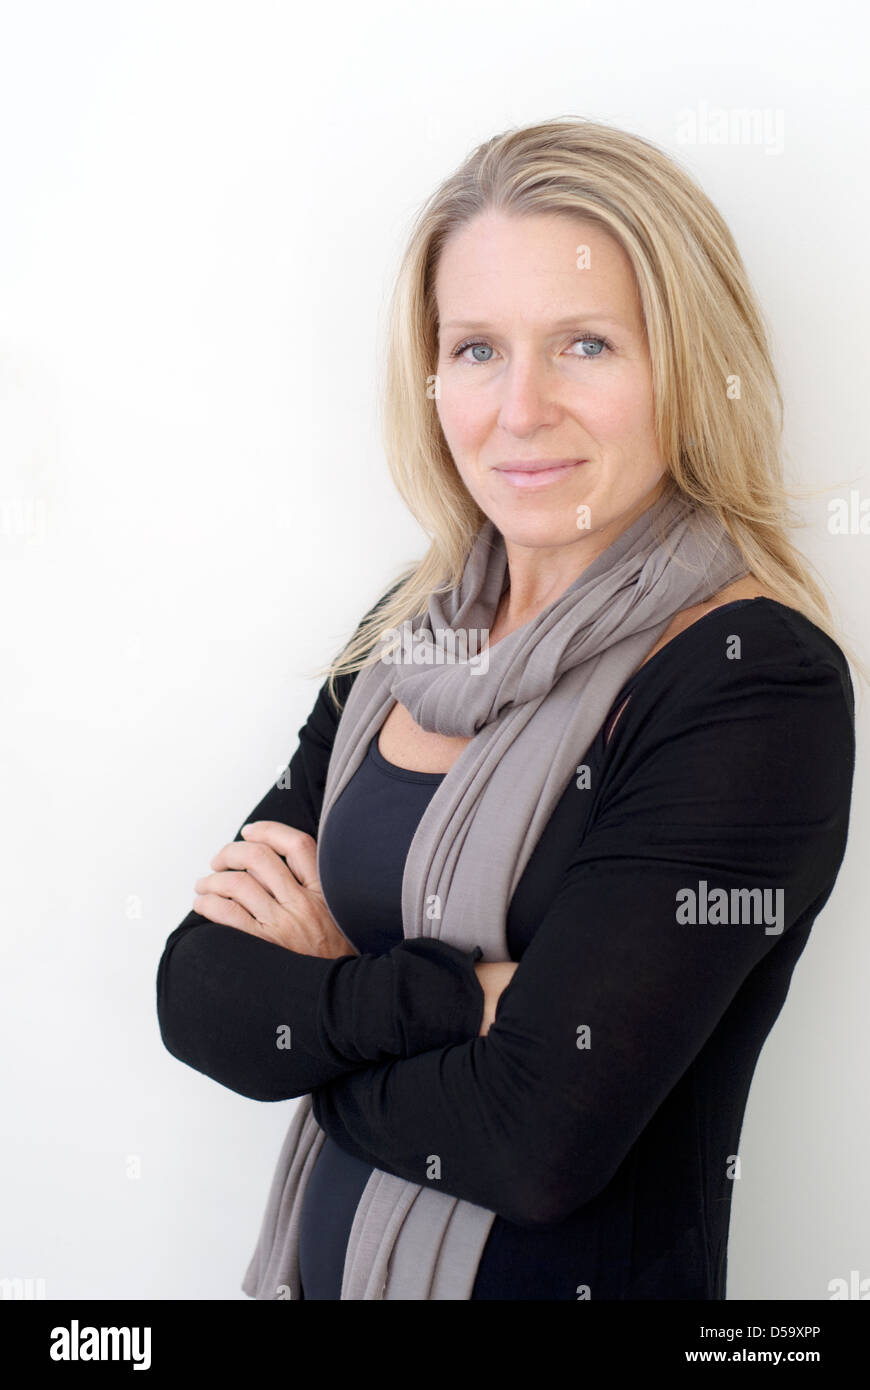 Business style portrait of pretty confident appearing woman in 40's - Stock Image